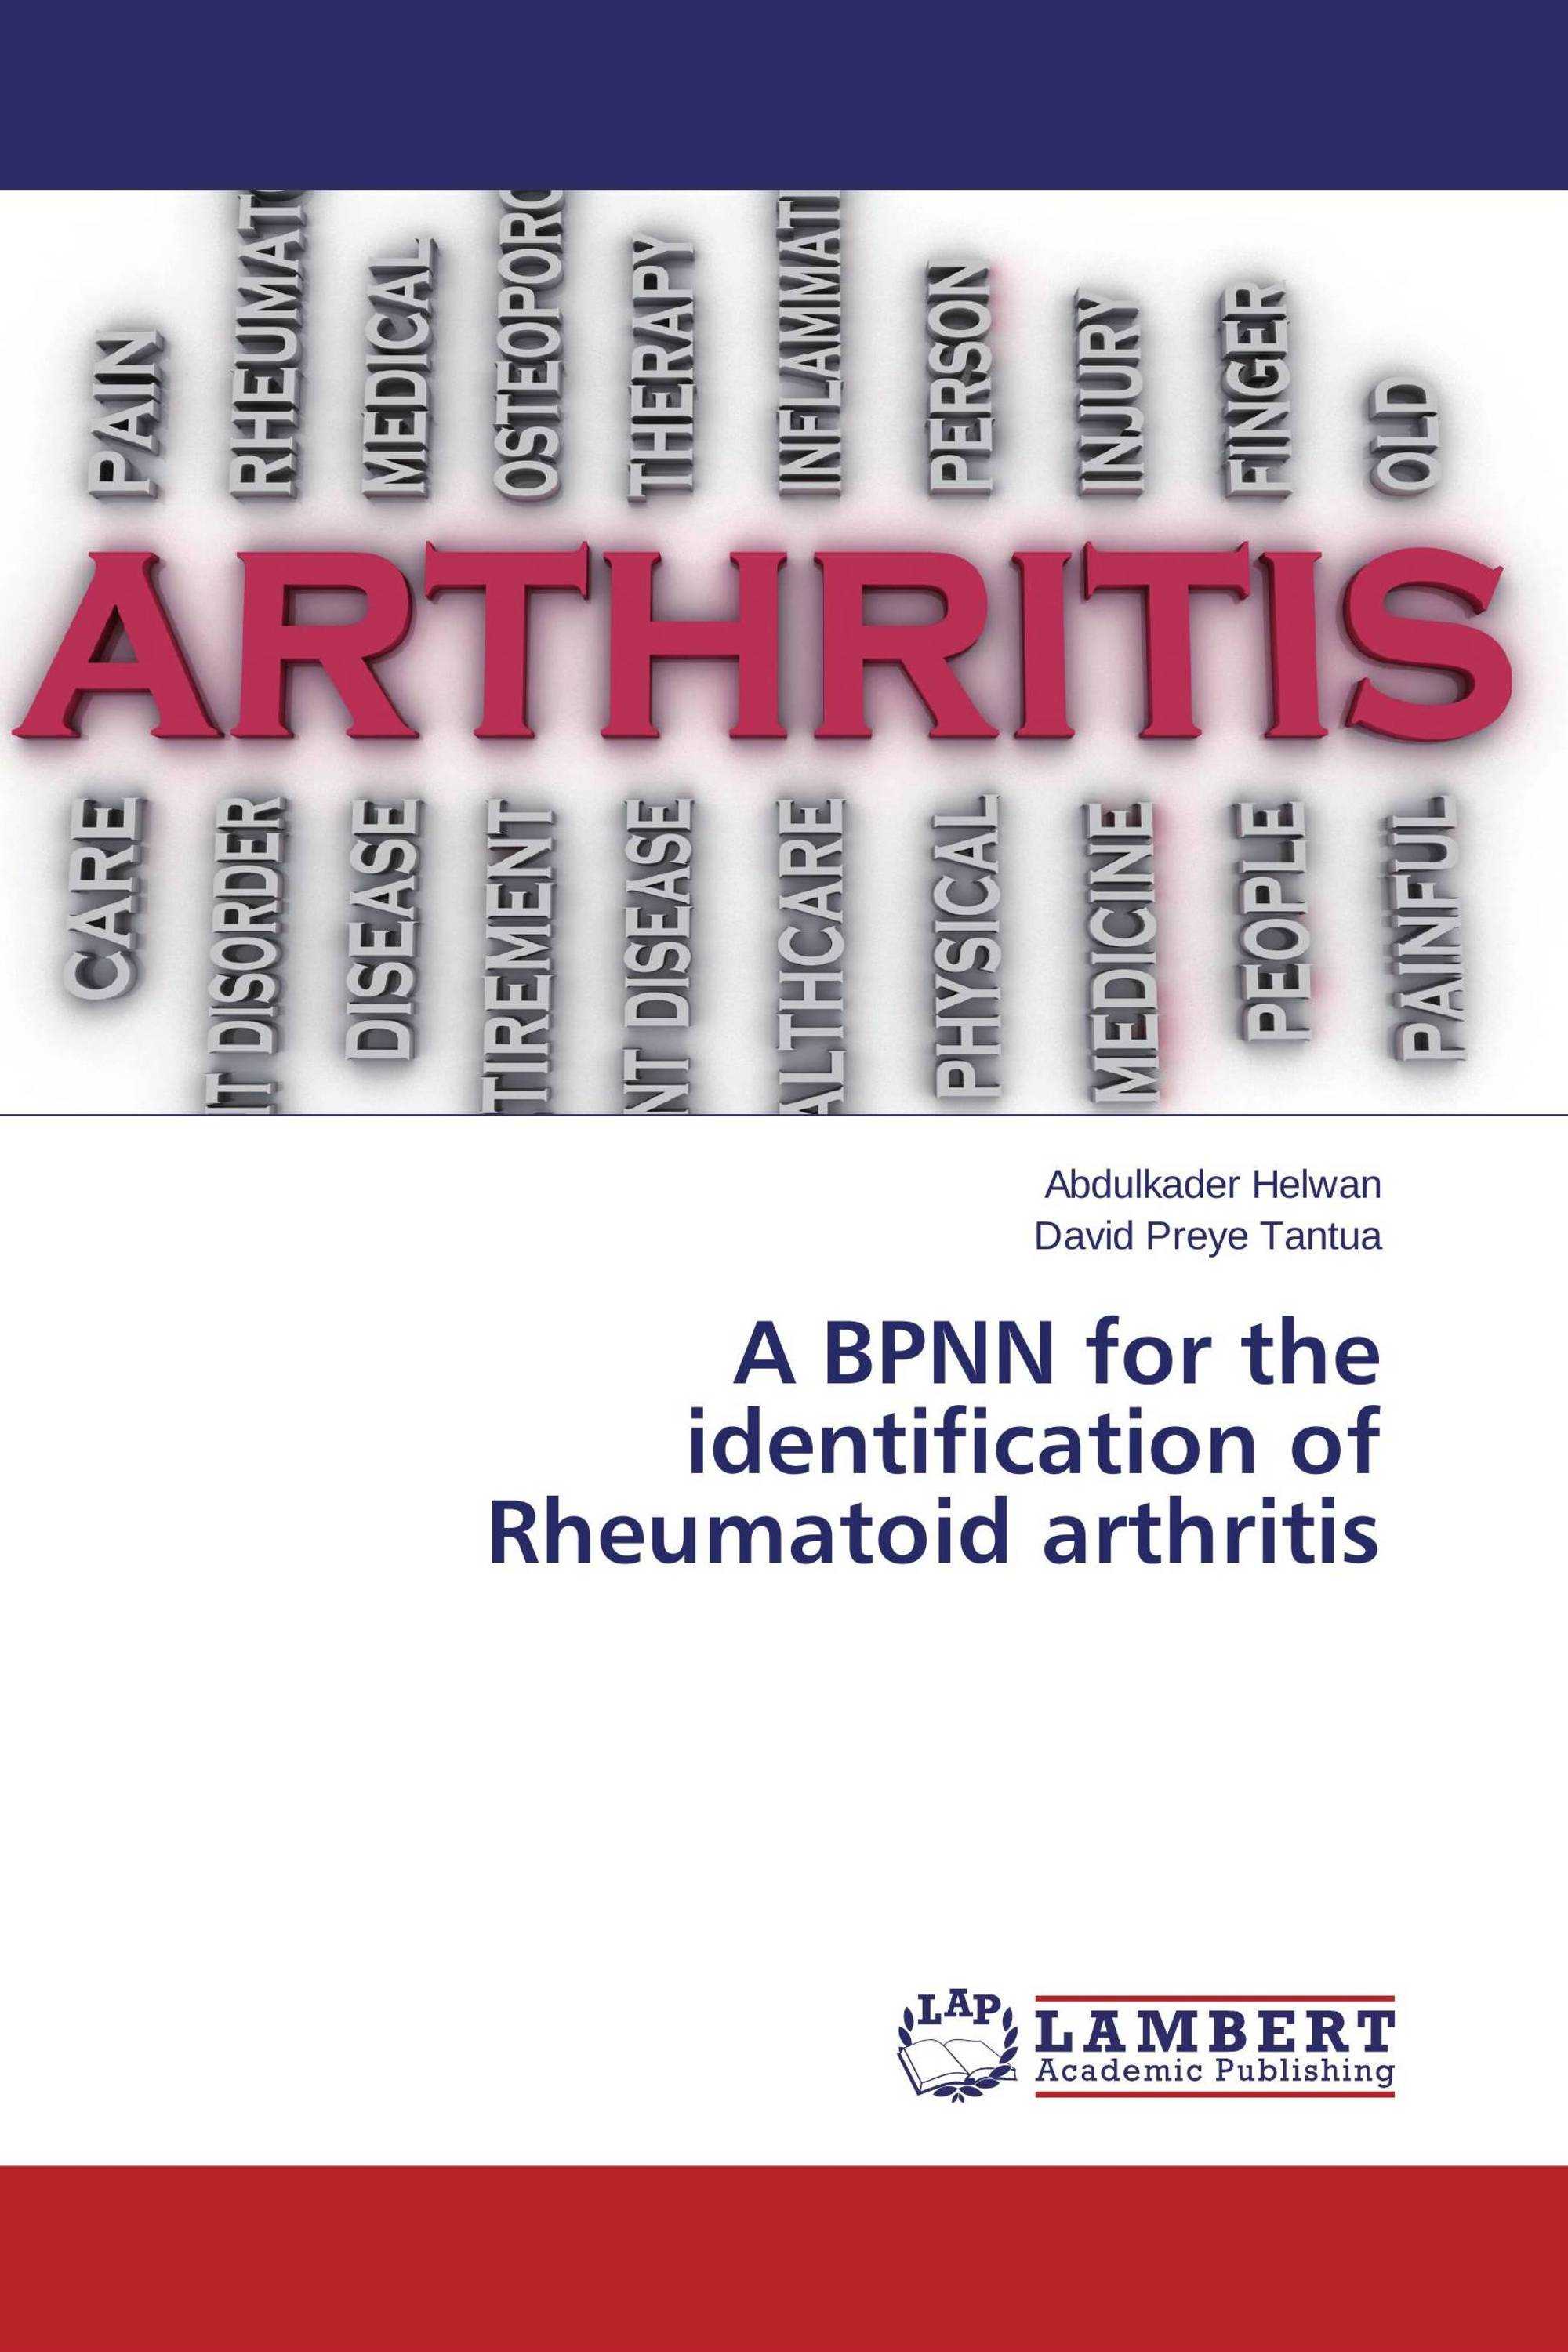 dissertations on rheumatoid arthritis Theses and dissertations--computer science by an authorized  57  rheumatoid arthritis dataset model errors computed as sum of absolute.